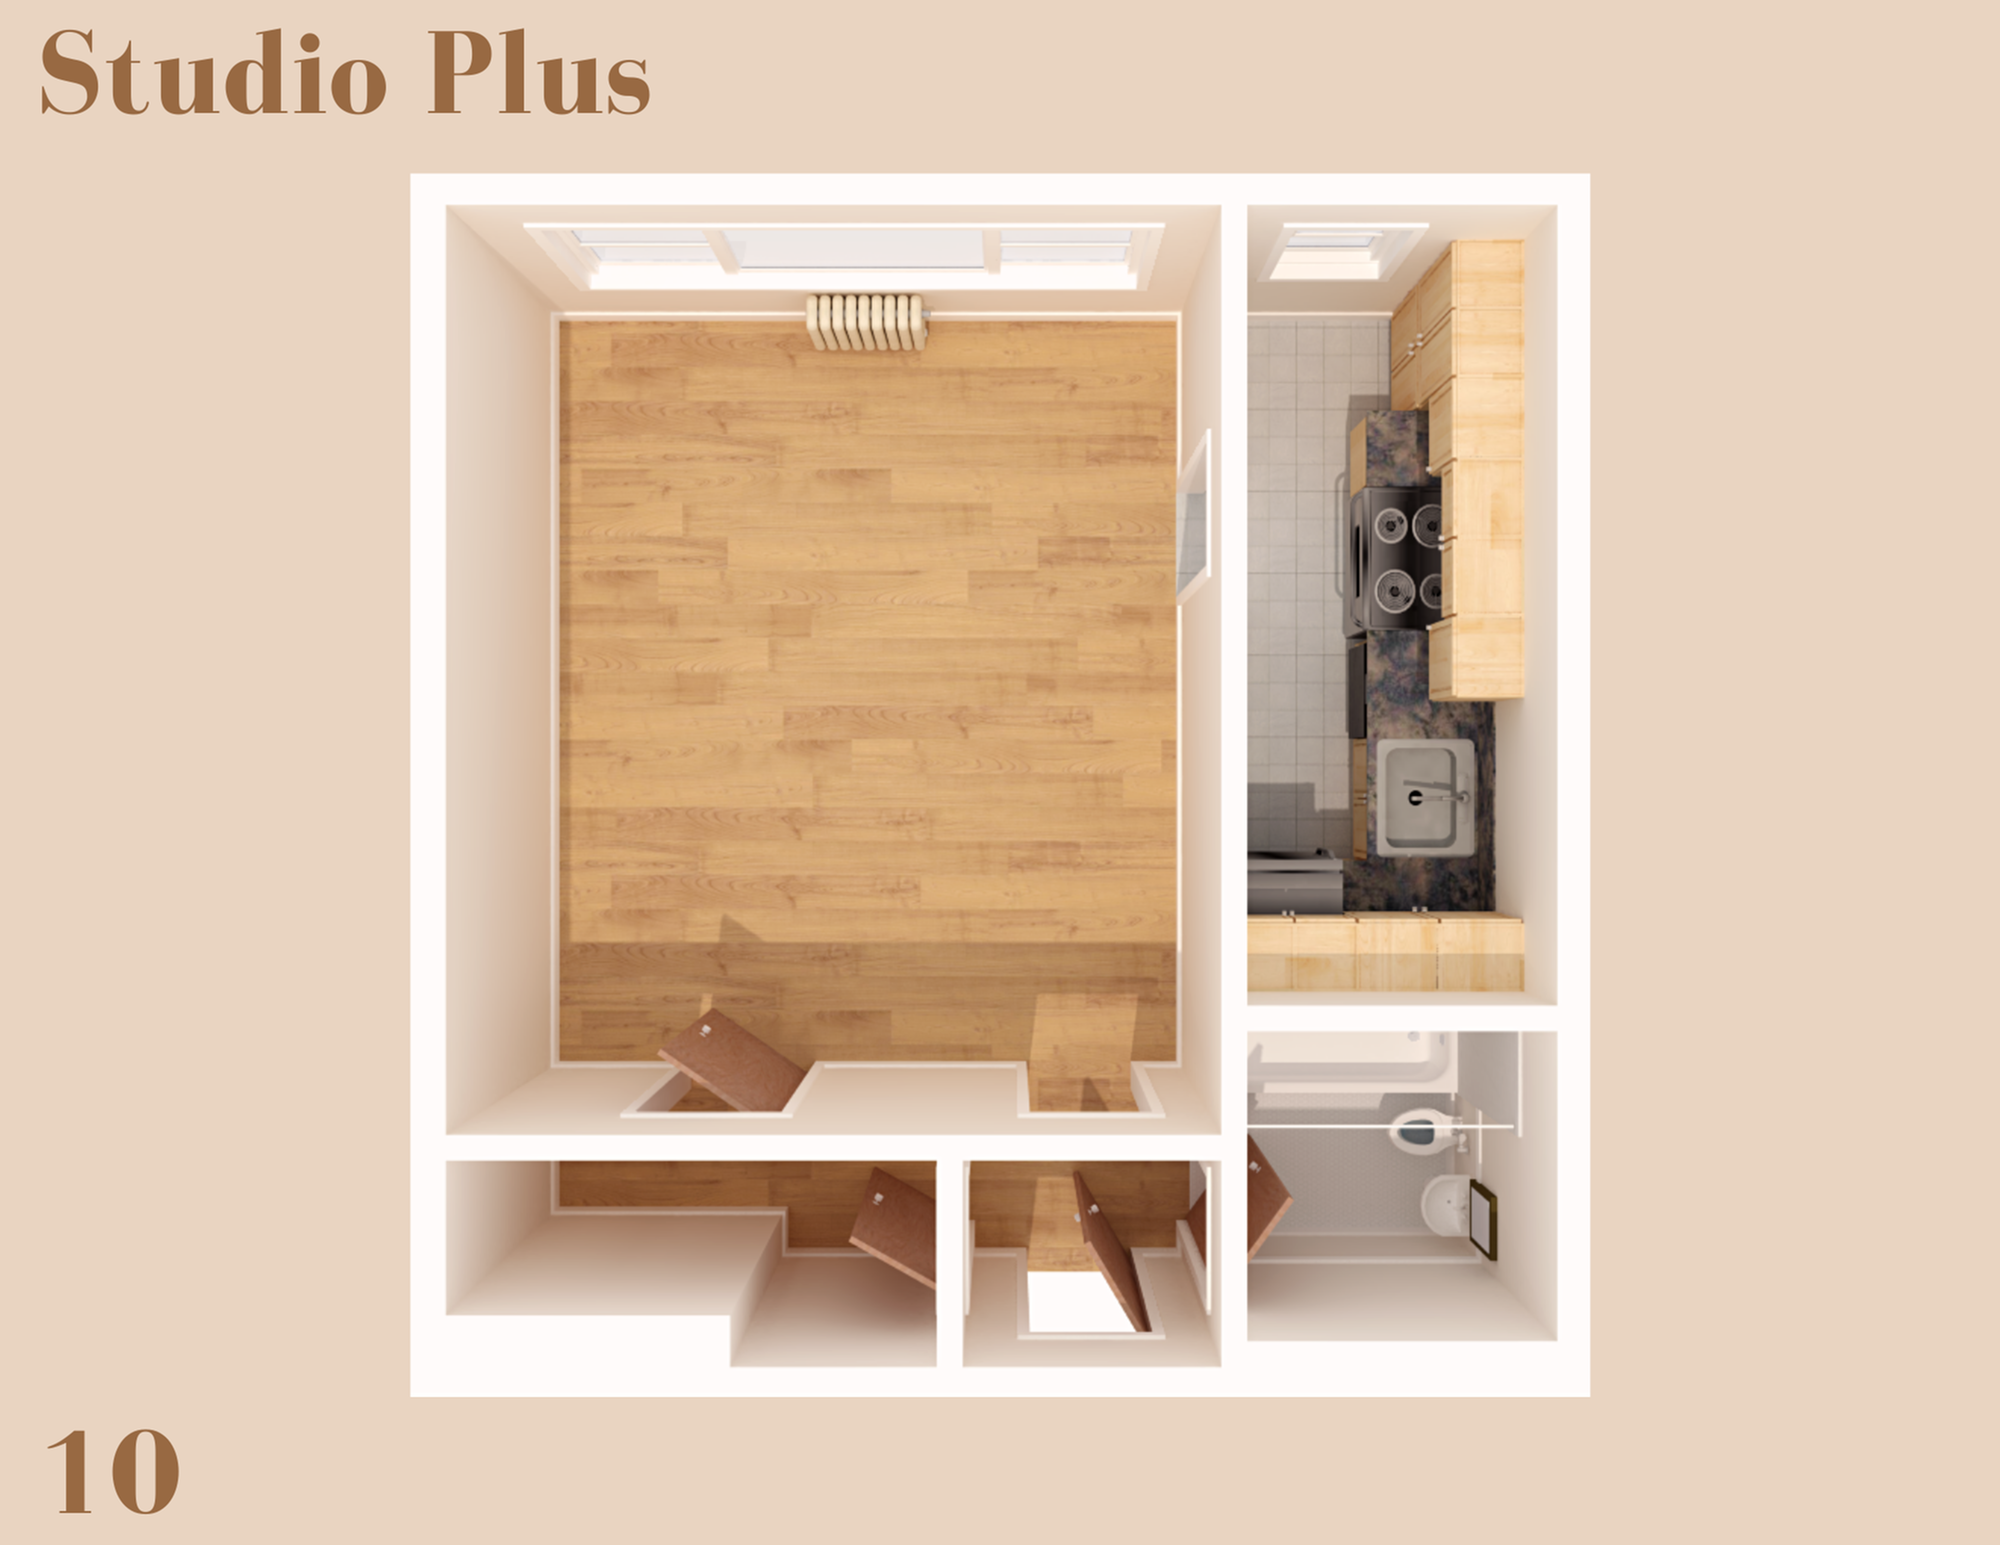 Wilsonian Studio Plus 10